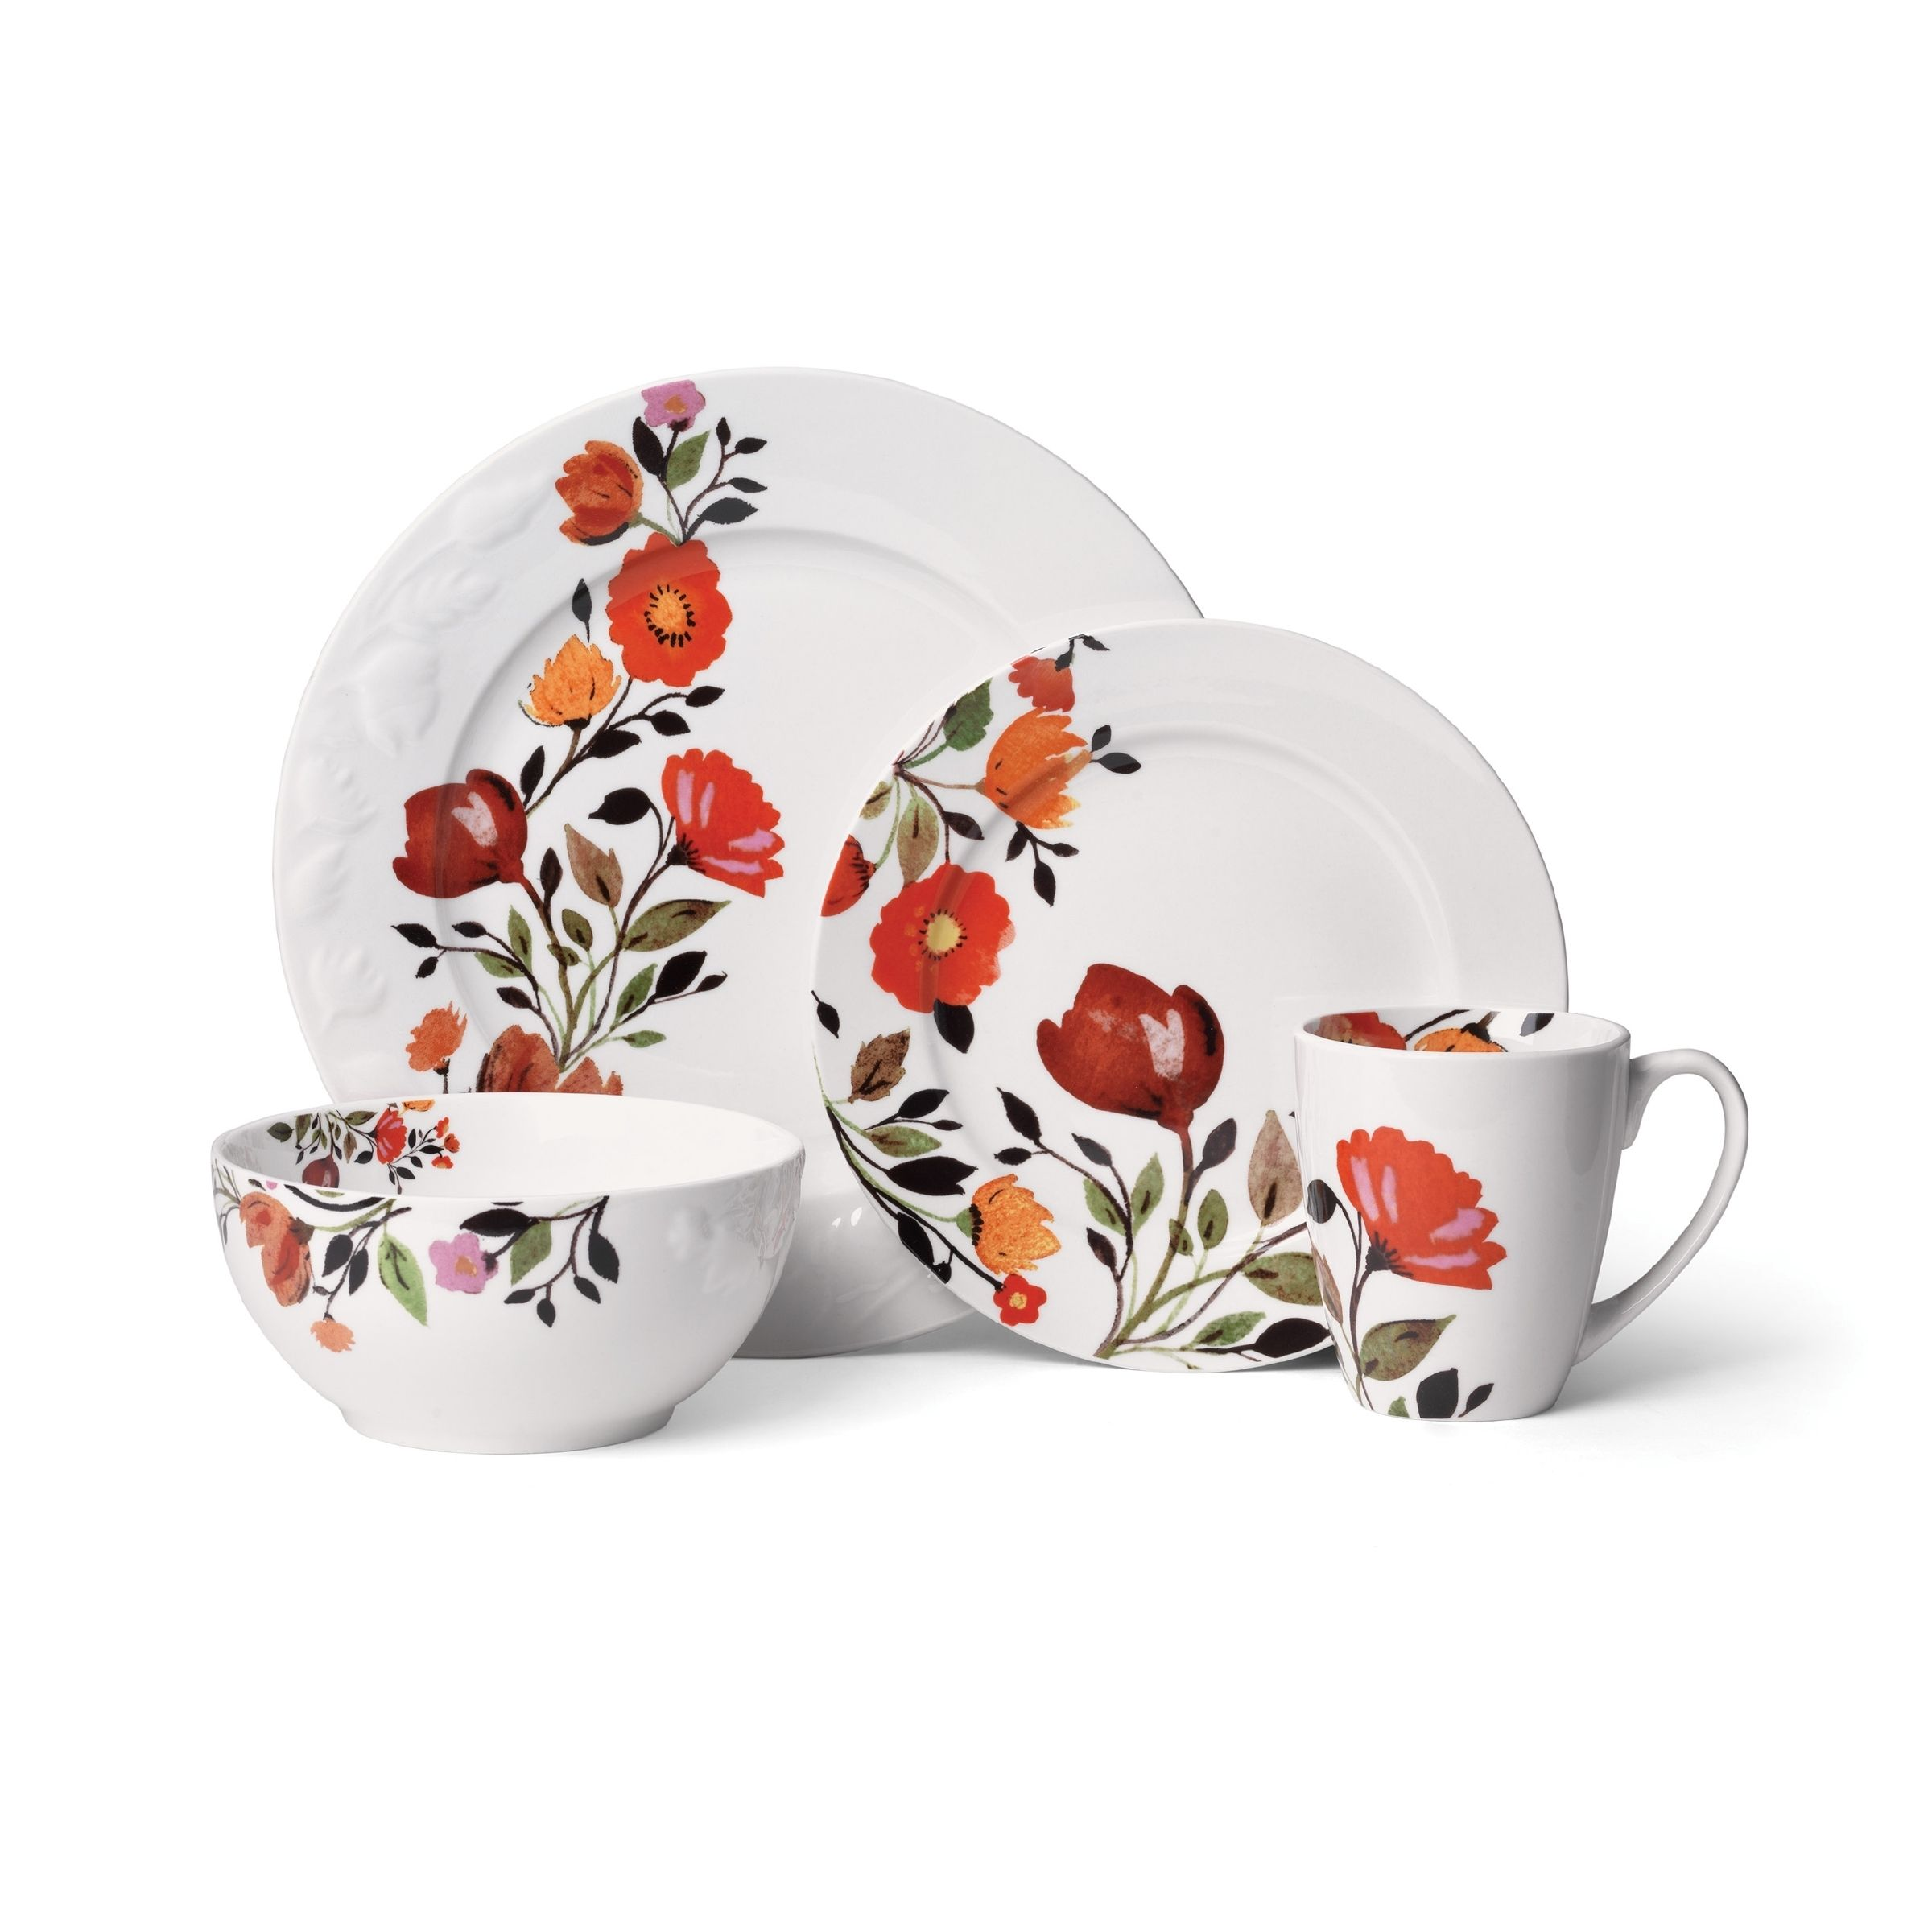 Gourmet Basics by Mikasa Tulips 16-Piece Dinnerware Set (Gourmet Basics Tulips 16 Piece Dinnerware Set) Gold (Porcelain Floral)  sc 1 st  Pinterest & Gourmet Basics by Mikasa Tulips 16-Piece Dinnerware Set (Gourmet ...